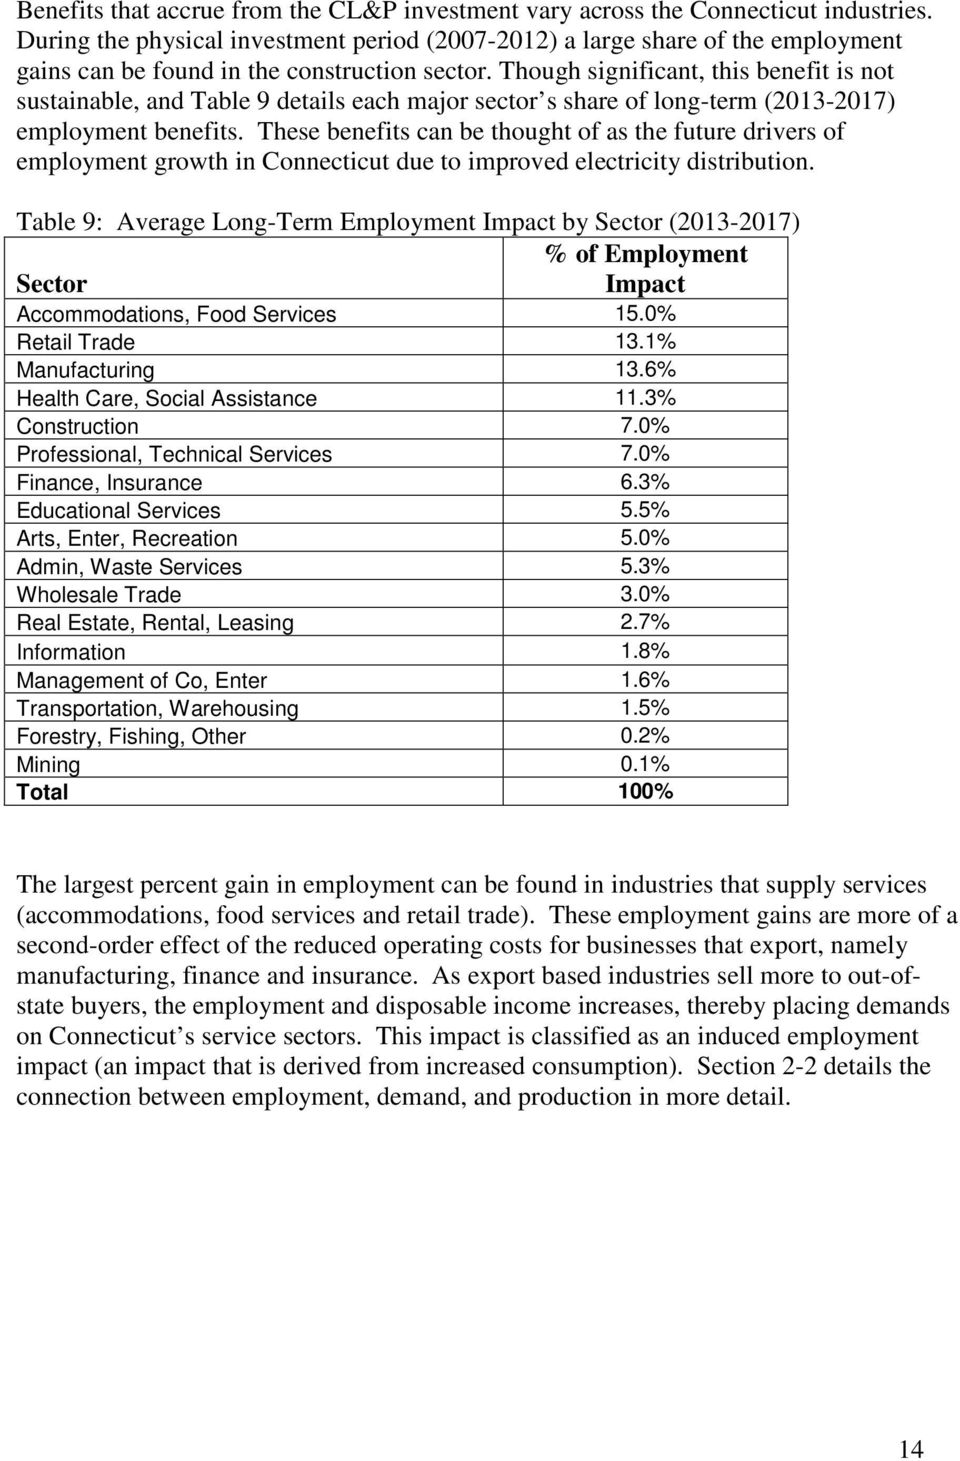 Though significant, this benefit is not sustainable, and Table 9 details each major sector s share of long-term (2013-2017) employment benefits.